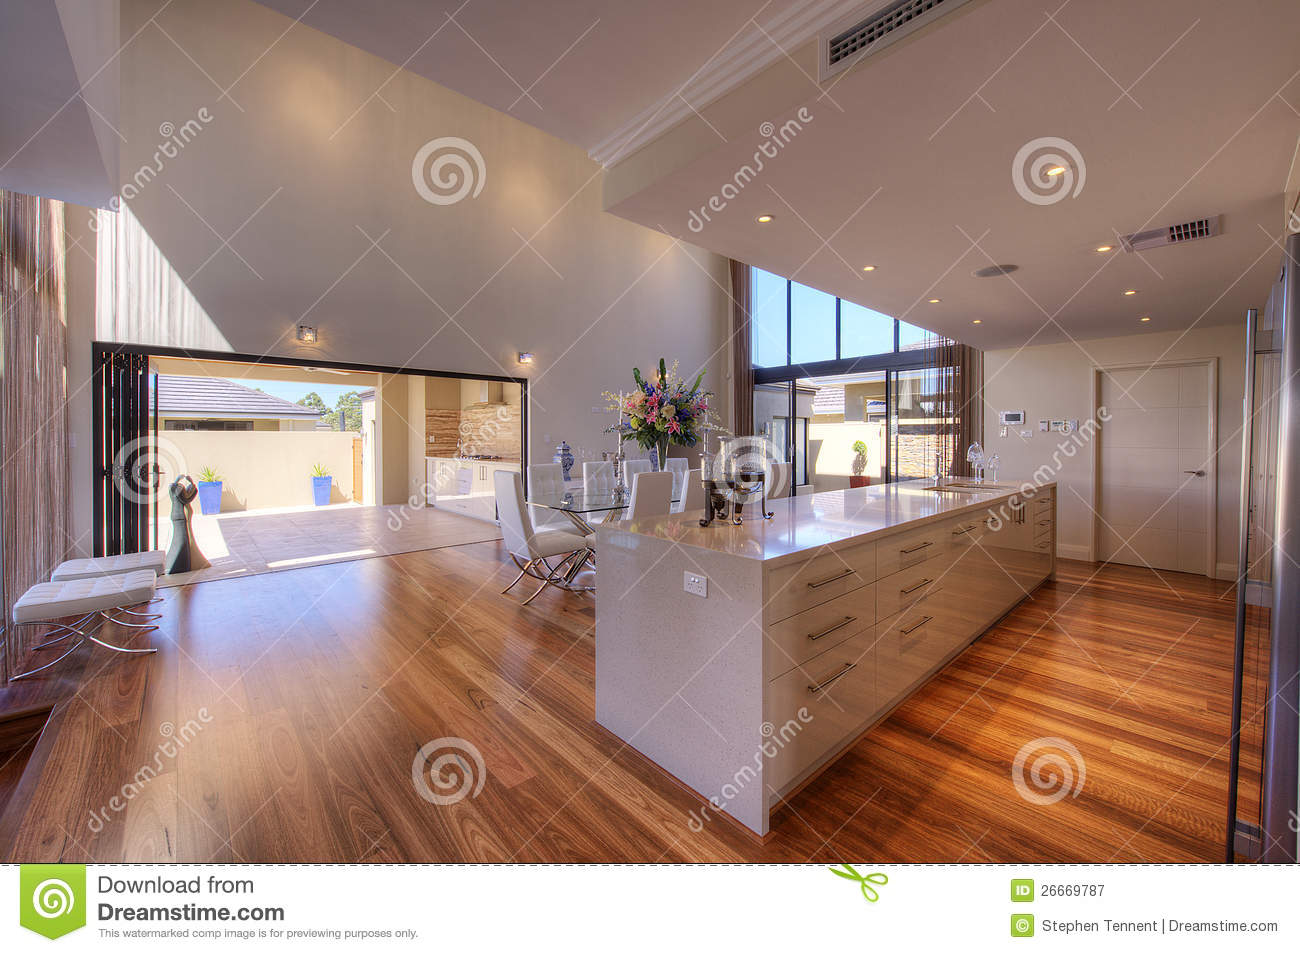 Luxurious Modern OpenPlan Galley Kitchen Stock Image  Image of breakfast ceilings 26669787